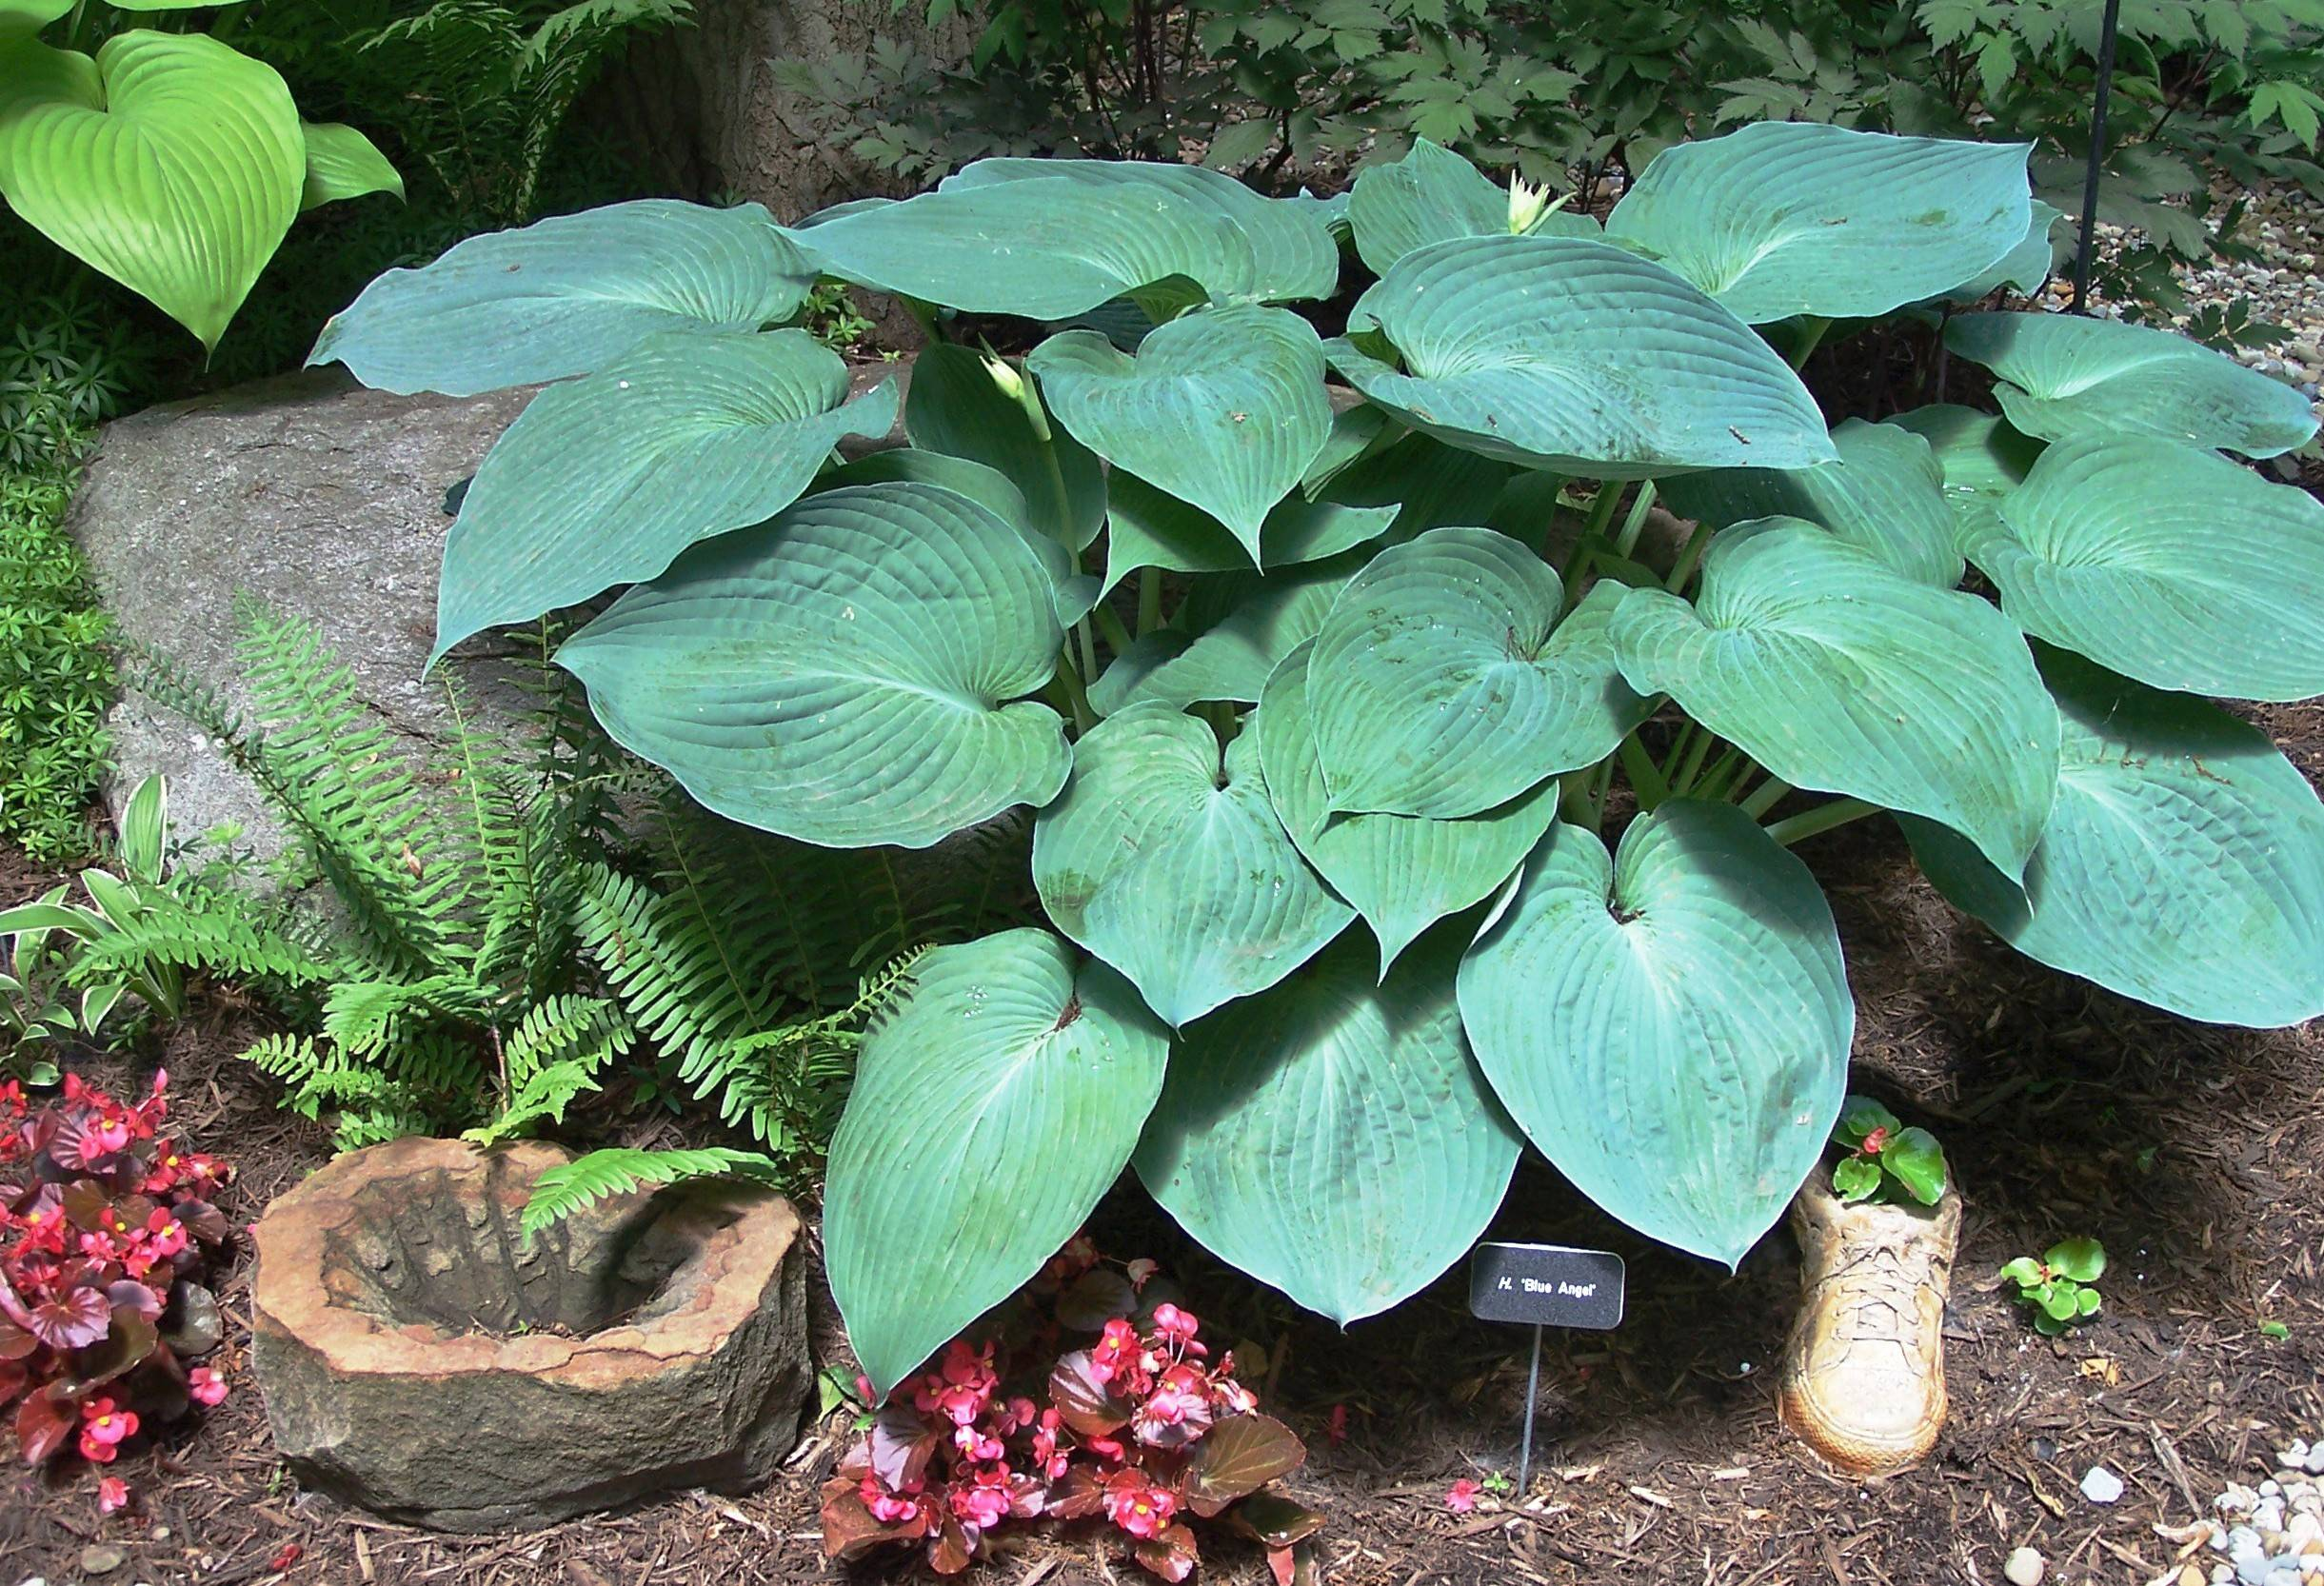 Blue Angel is one of the largest blue hostas.